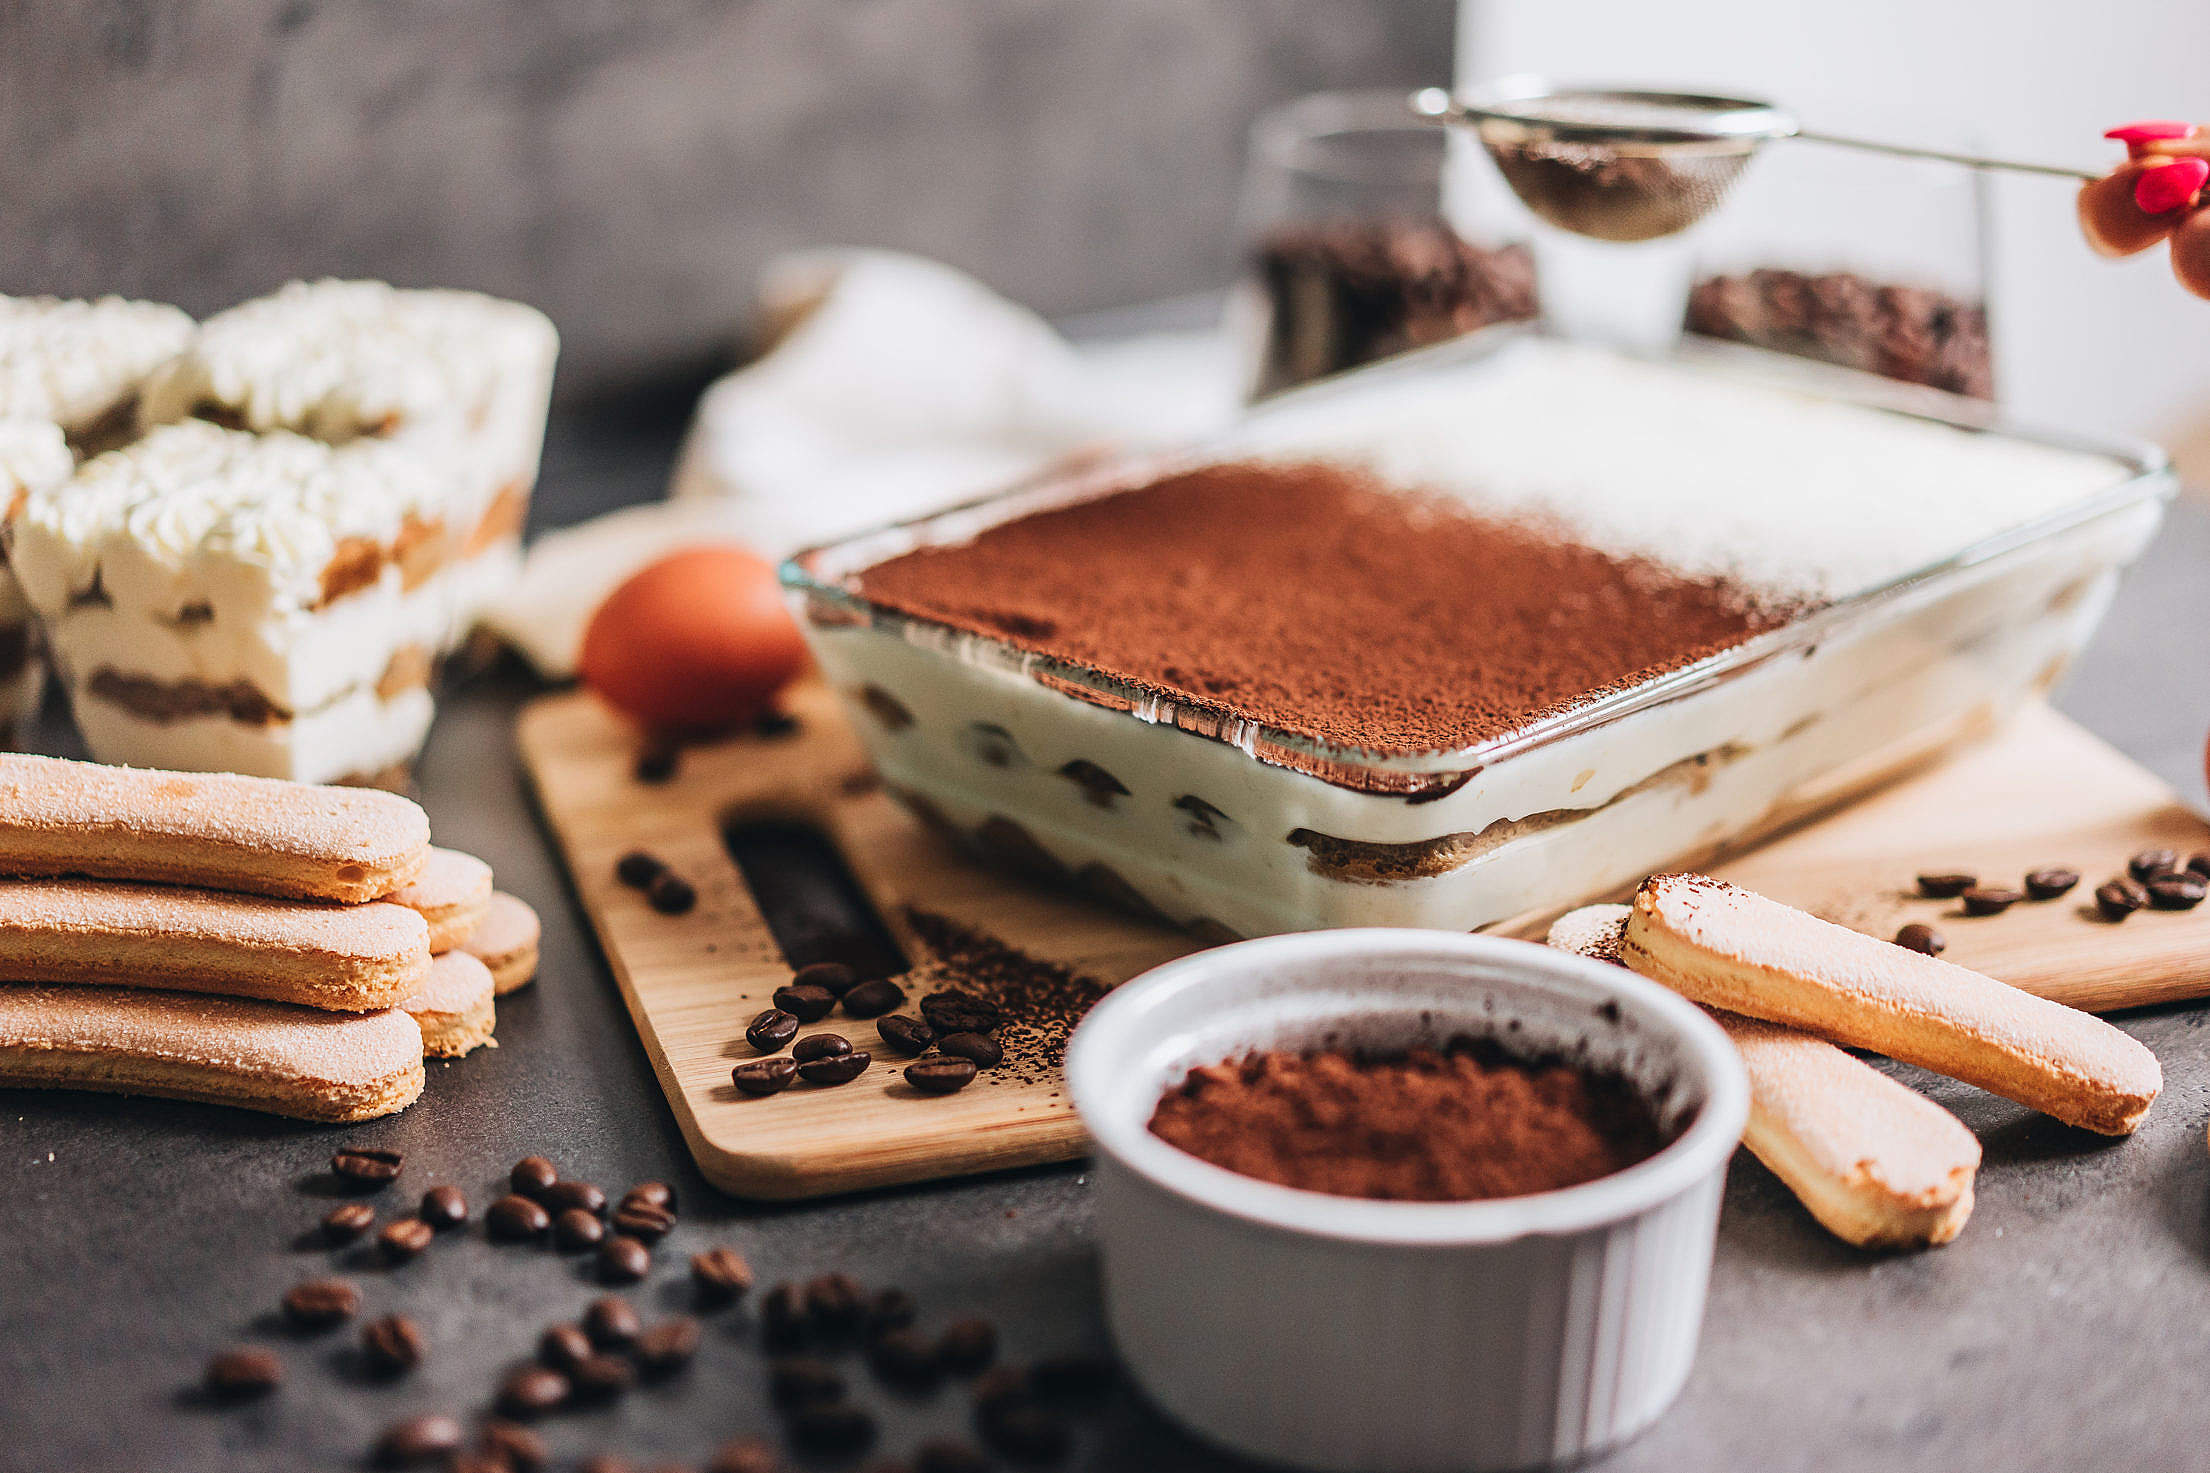 Female Hand Sprinkling Cocoa Powder on Tiramisu Free Stock Photo